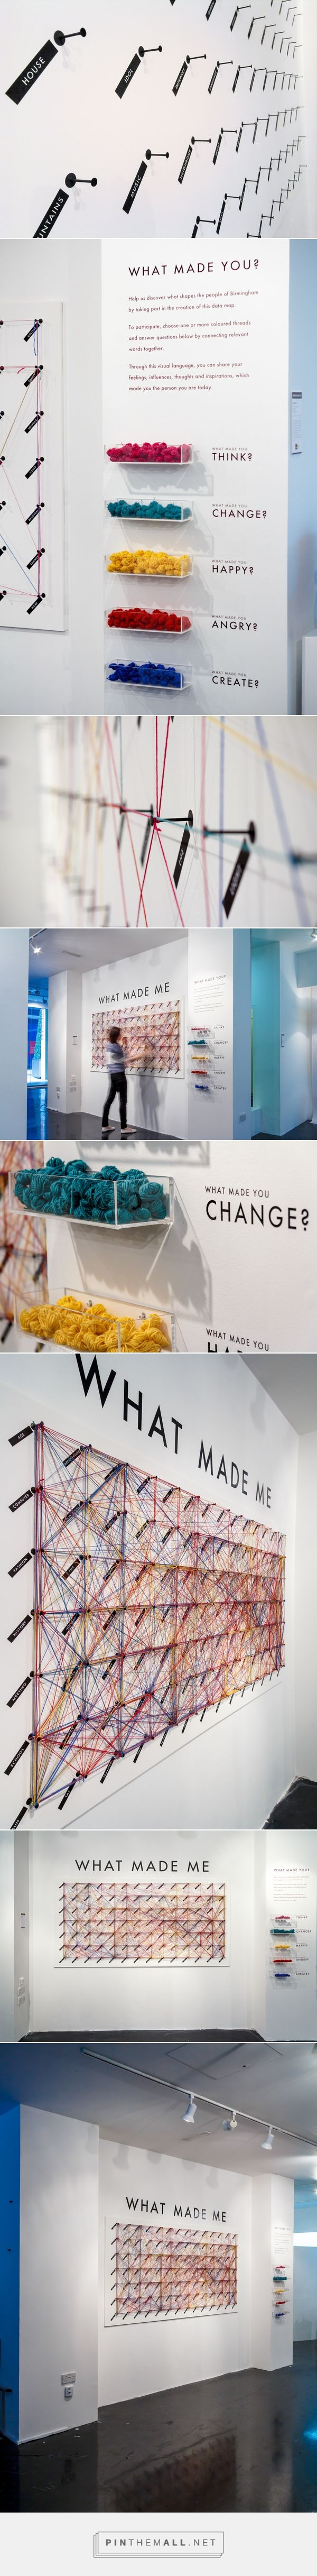 WHAT MADE ME Interactive Public Installation #installation #exhibition #design #ausstellung #museum #event